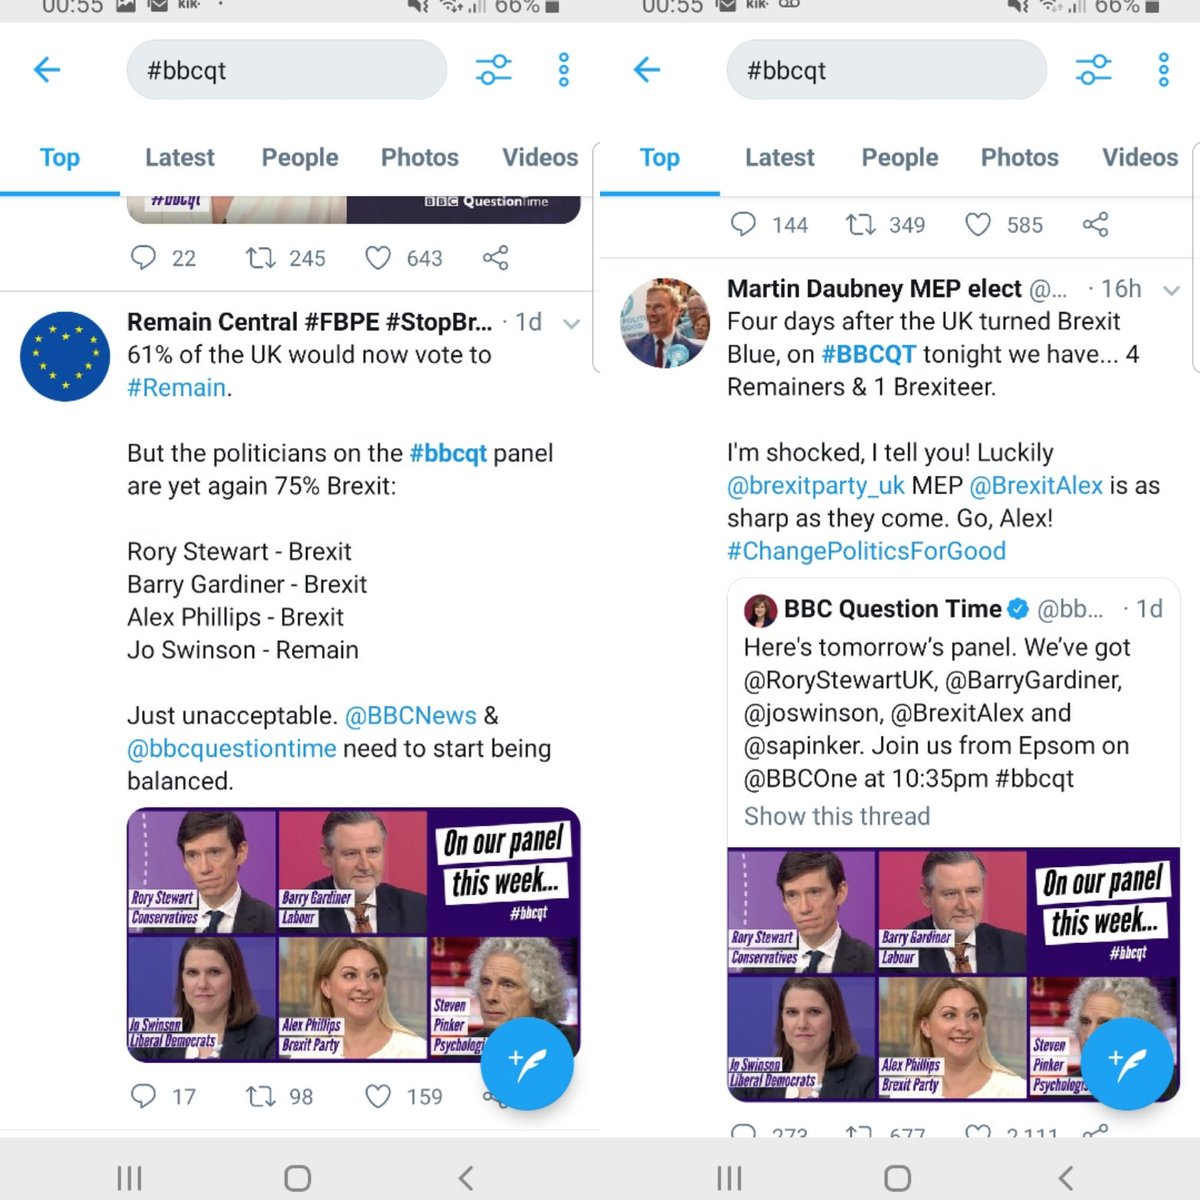 #bbcqt the idiocy of the current state of affairs is perfectly summed up in these two tweets. Both were apparently watching the same programme but you wouldn't think it!!!  Too Brexit, not enough Brexit, biased media swinging more than an overpaid executive's desk toy!! 🤷🏼‍♀️🙅🏼‍♀️🤦🏼‍♀️